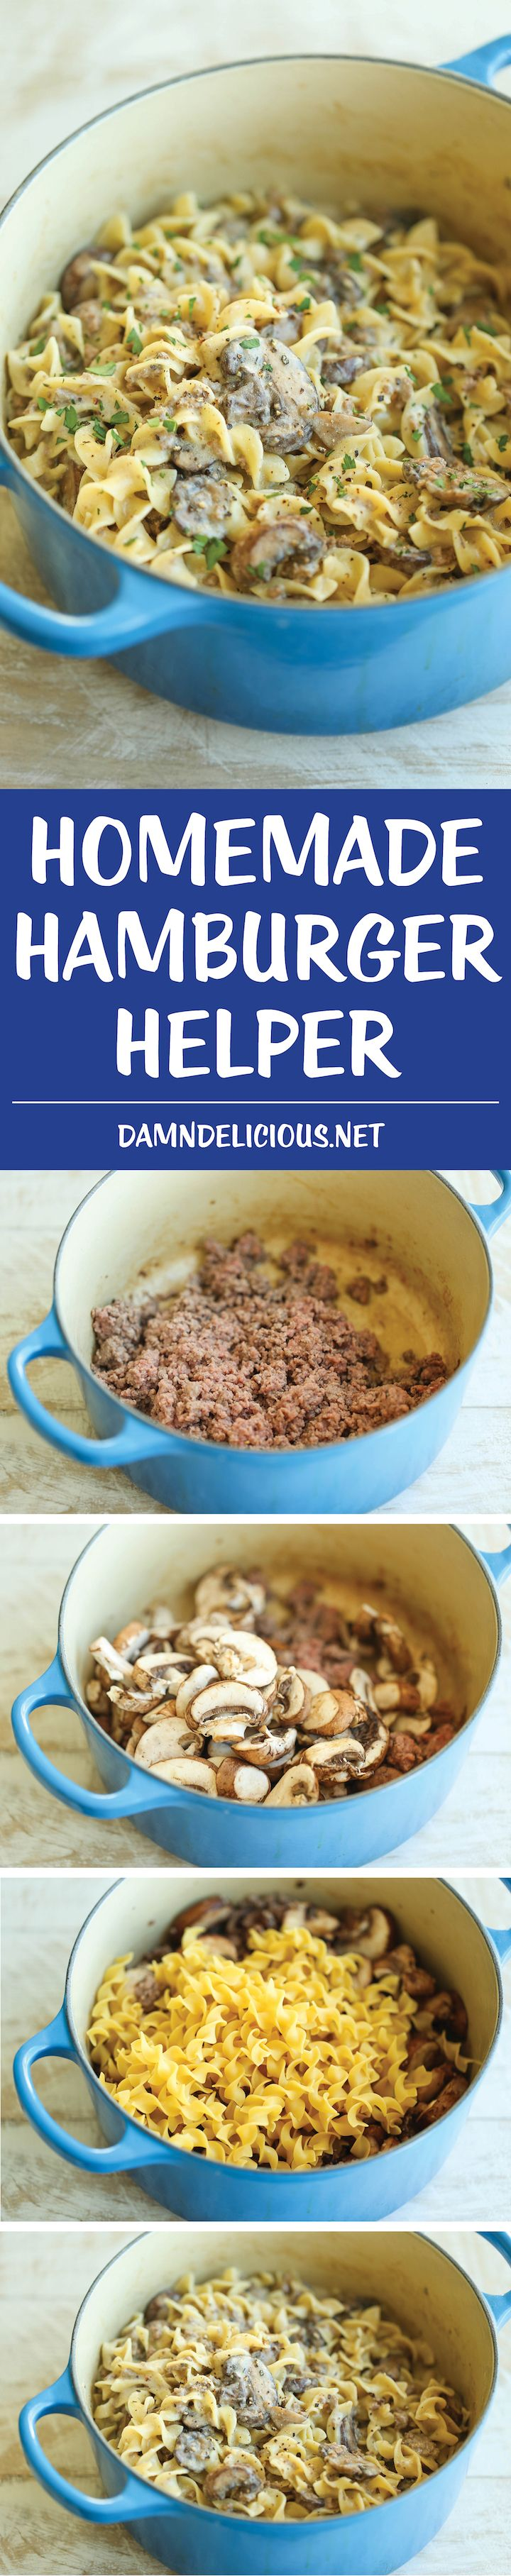 Homemade Hamburger Helper - Beef stroganoff made completely from scratch in ONE POT in less than 30 min. And it tastes 10000x better than the boxed stuff!